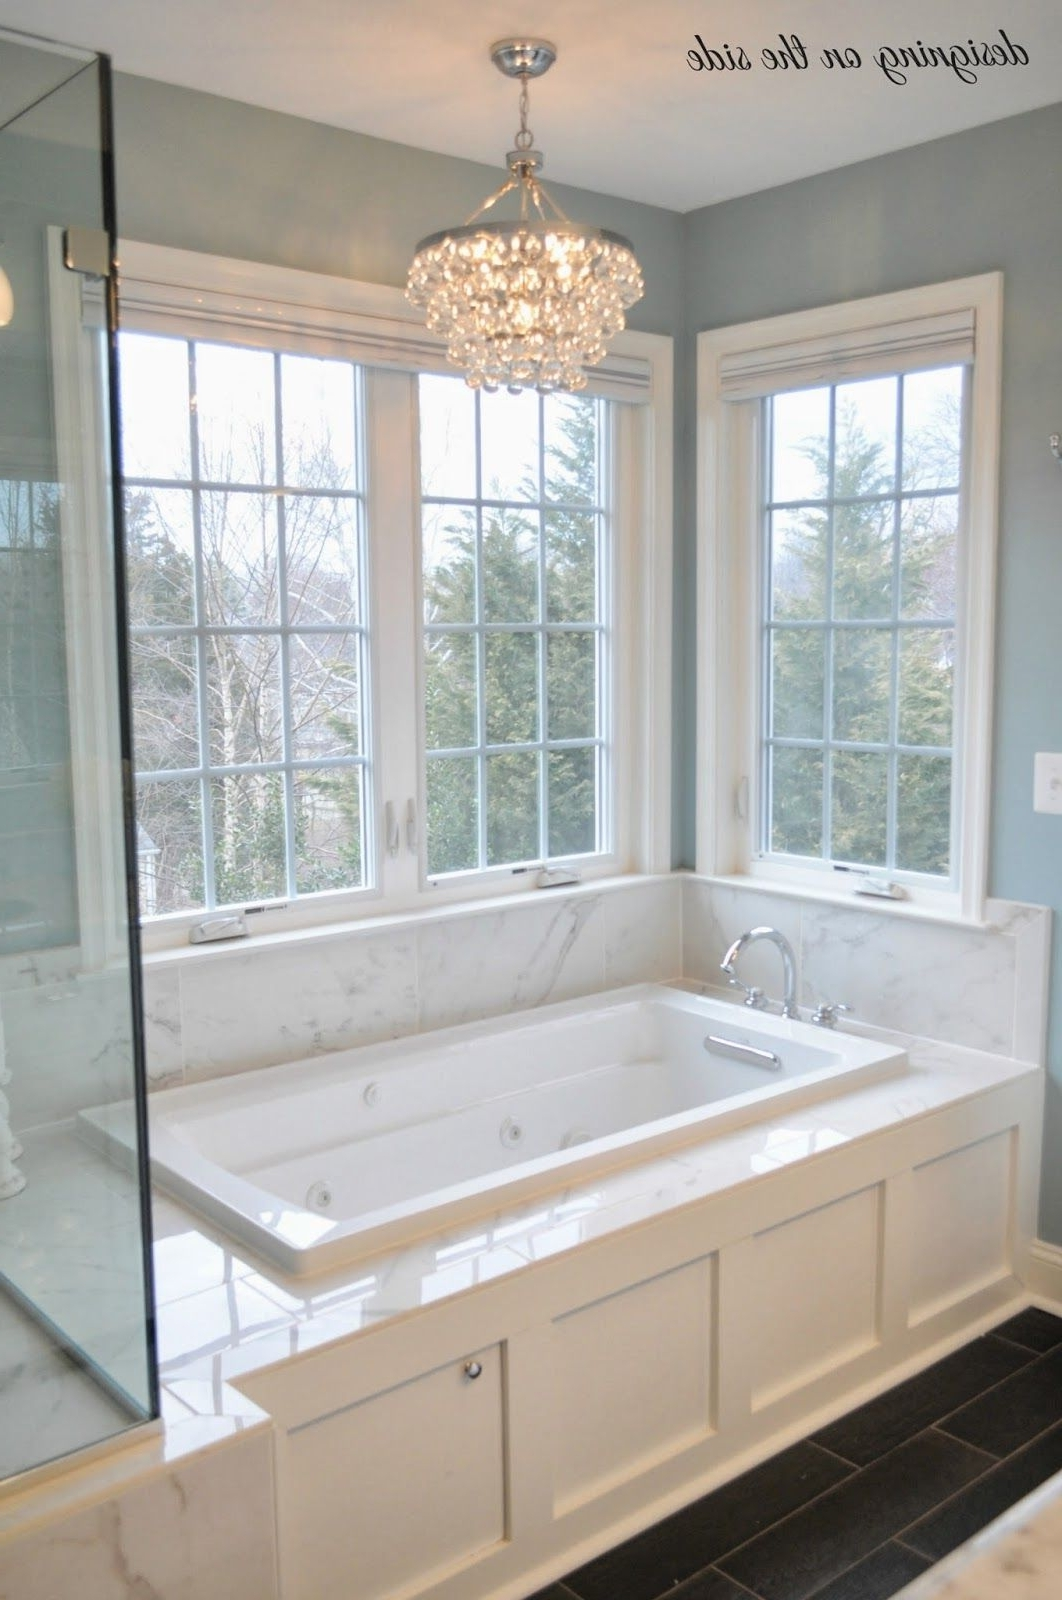 Master Bath, Marble Tile, Sw Rain, Crystal Chandelier, Tile That Within Widely Used Crystal Chandelier Bathroom Lighting (View 12 of 20)